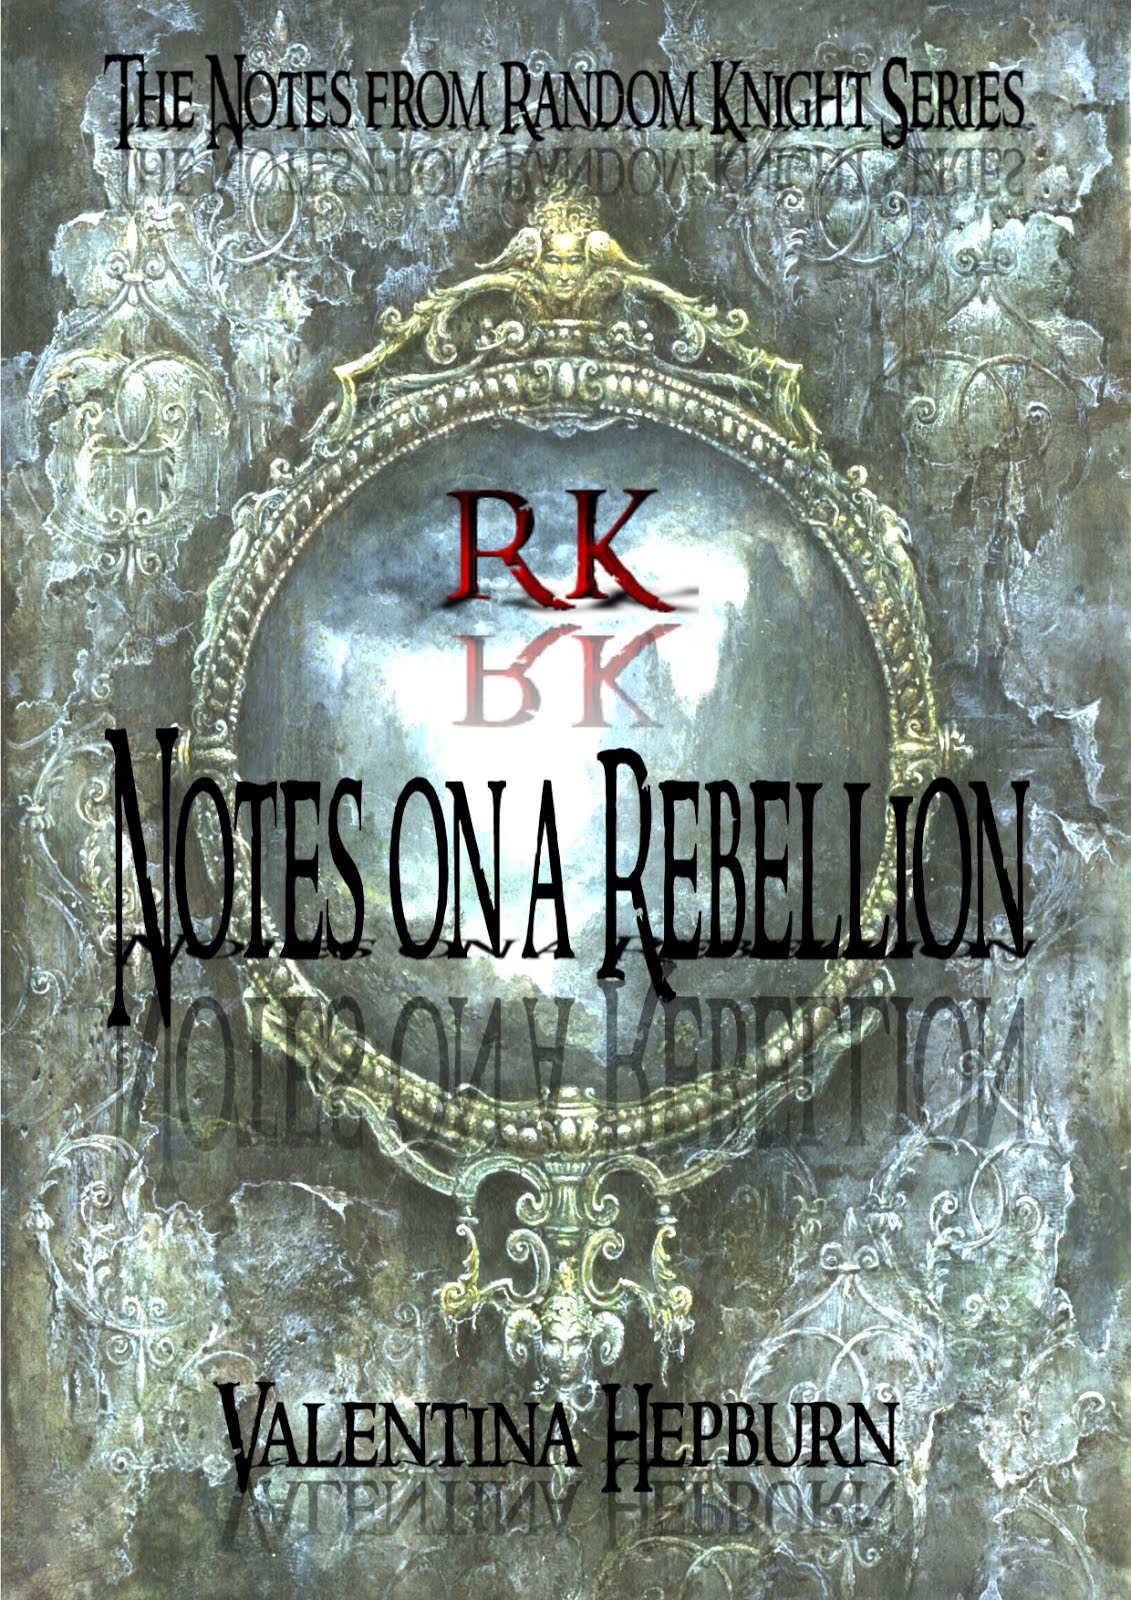 NOTES ON A REBELLION